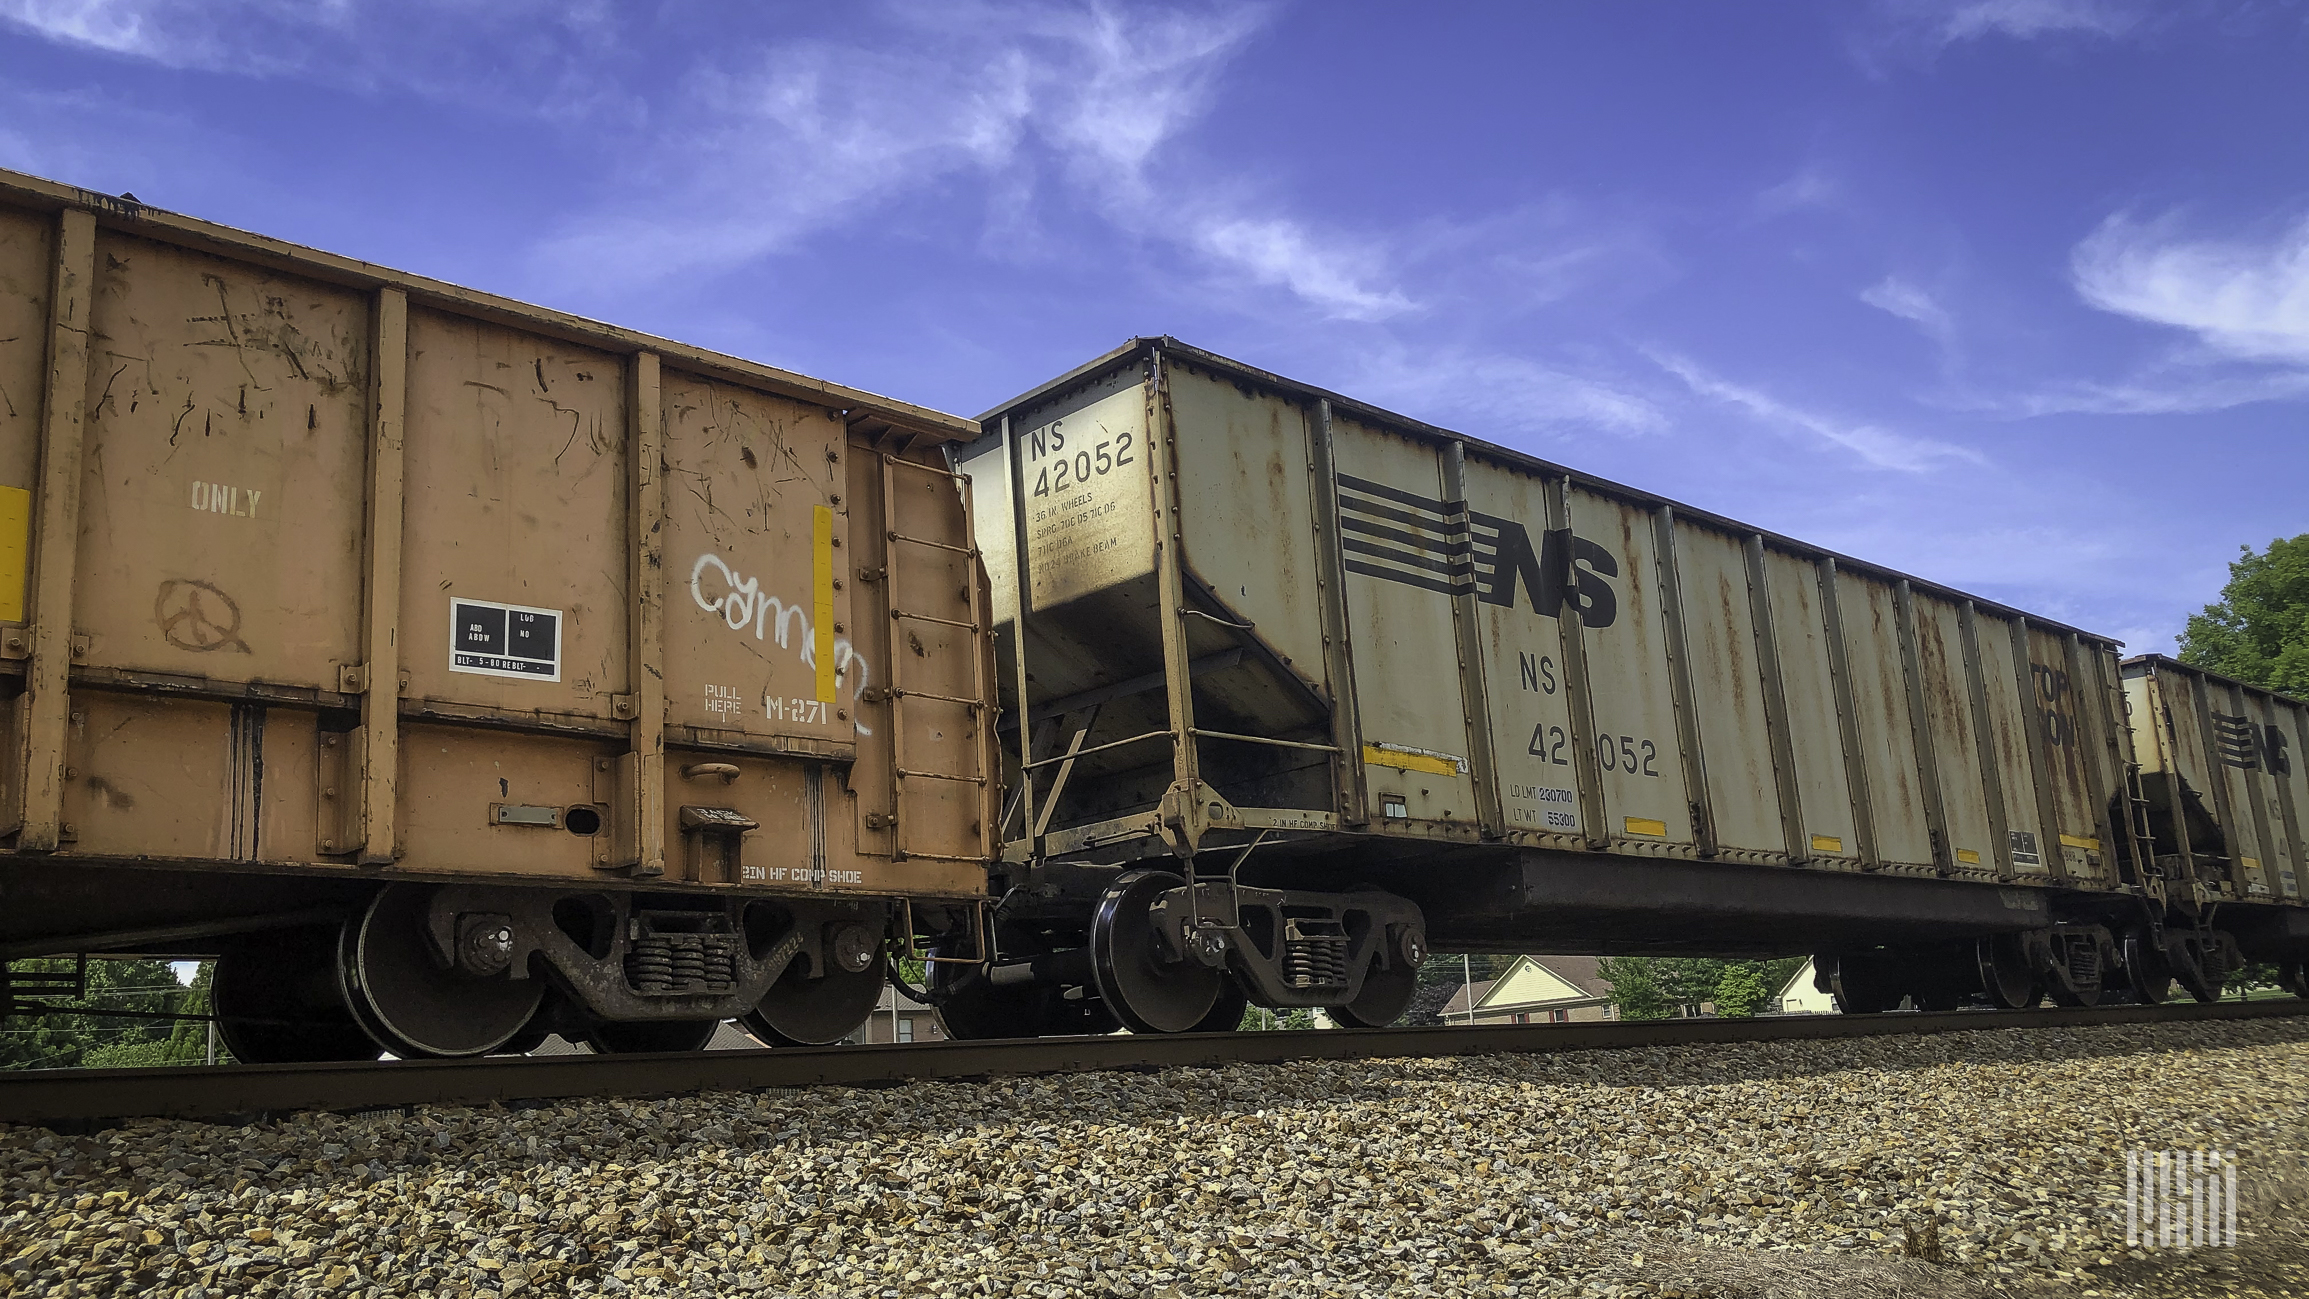 A photograph of a train rolling by.